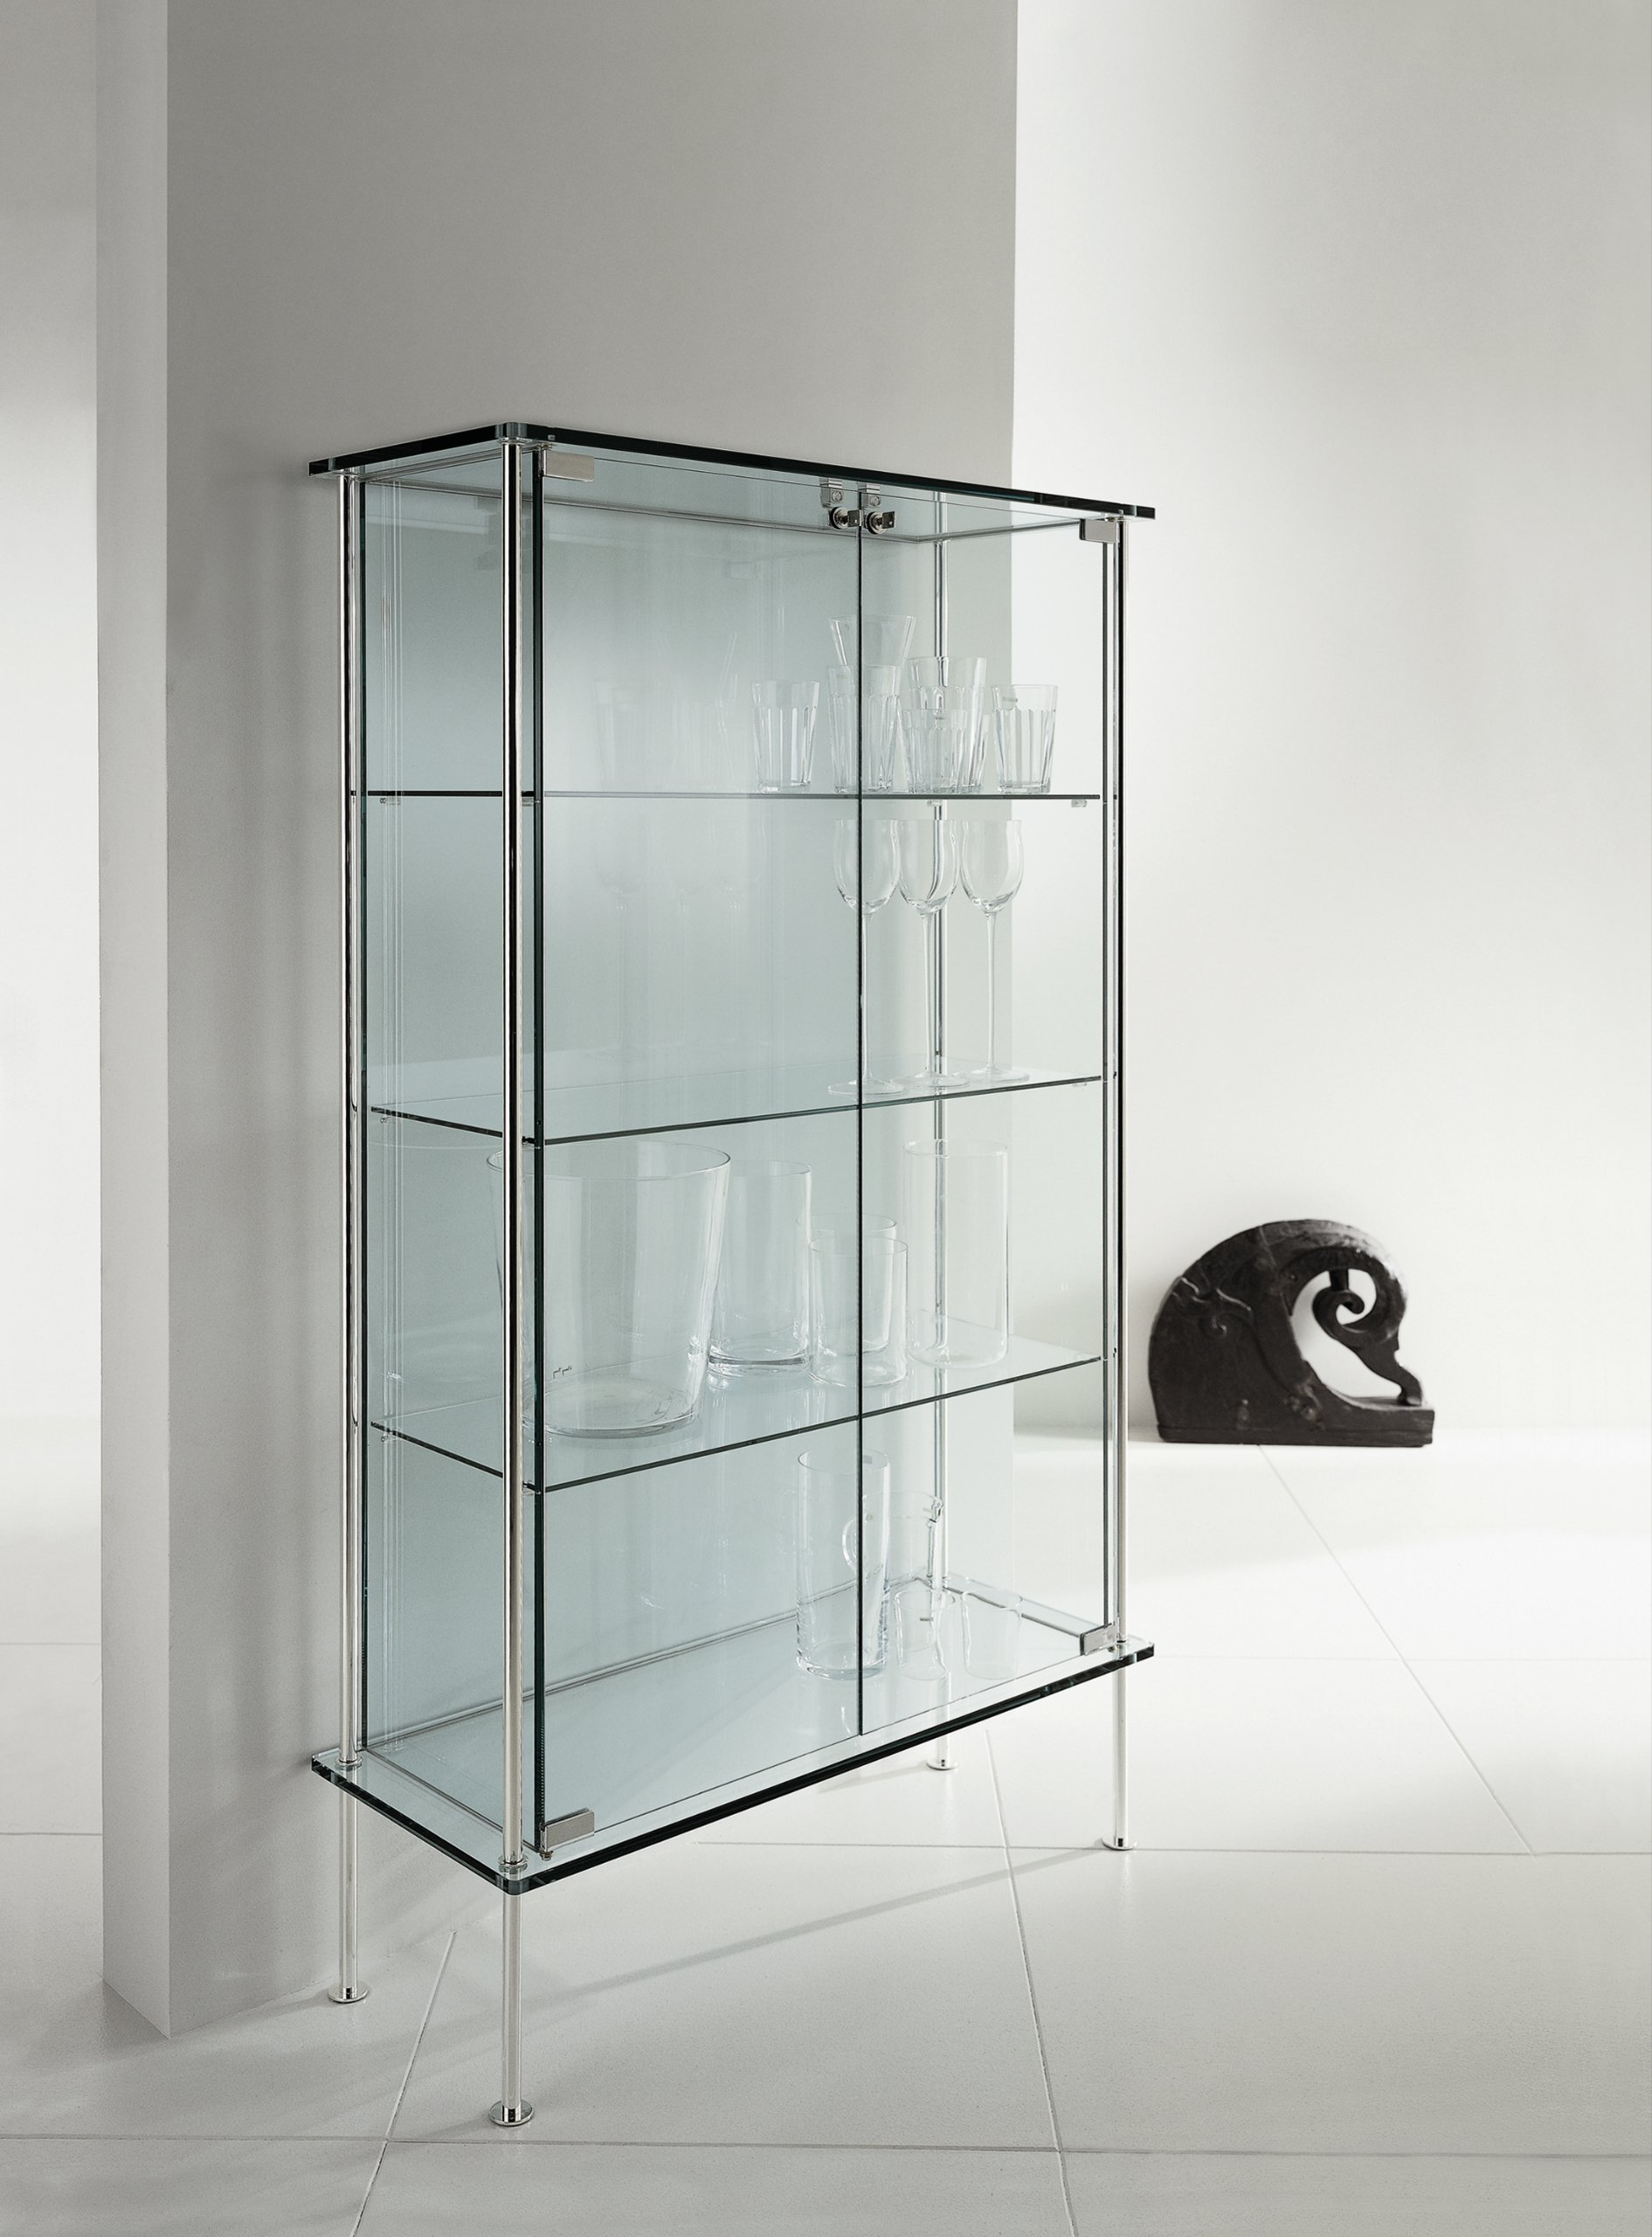 glass display cabinet shine by t d tonelli design design donato d 39 urbino paolo lomazzi. Black Bedroom Furniture Sets. Home Design Ideas